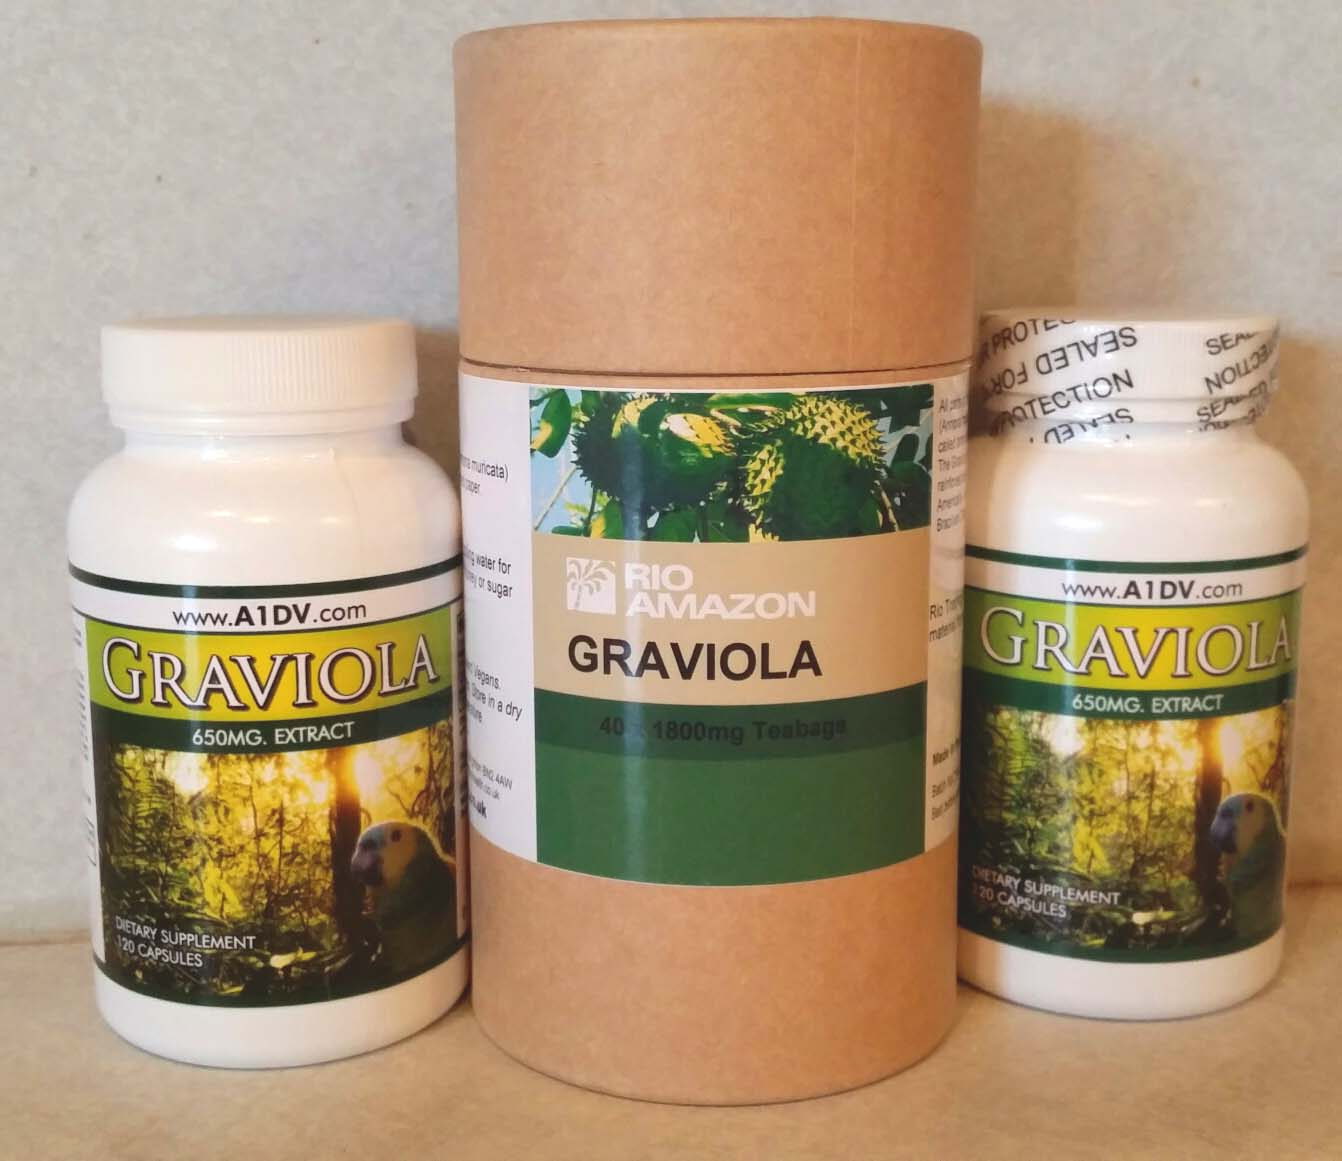 Graviola 1 Month Trial Pack (2 Bottles 650mg 120 caps and 1 Graviola Tea 40 Bags)